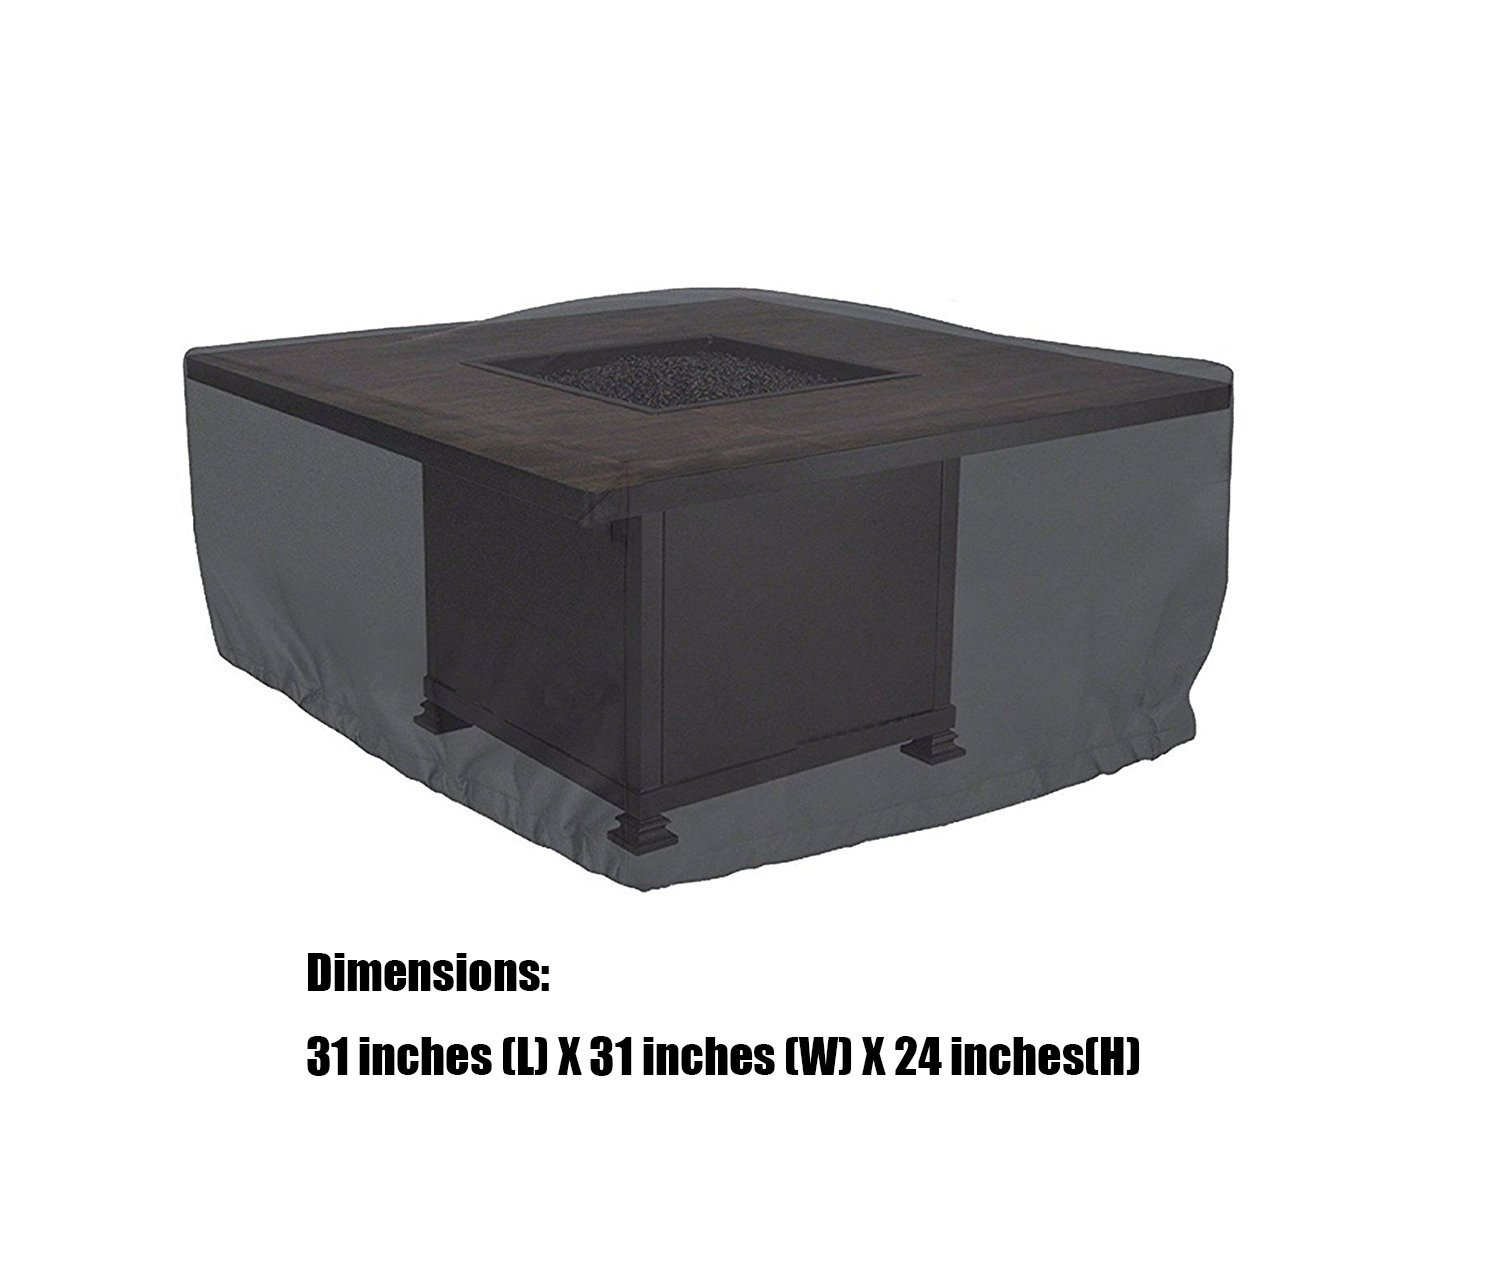 Cookingstar Gas firepit cover, 31 inches (L) X 31 inches (W) X 24 inches (H)